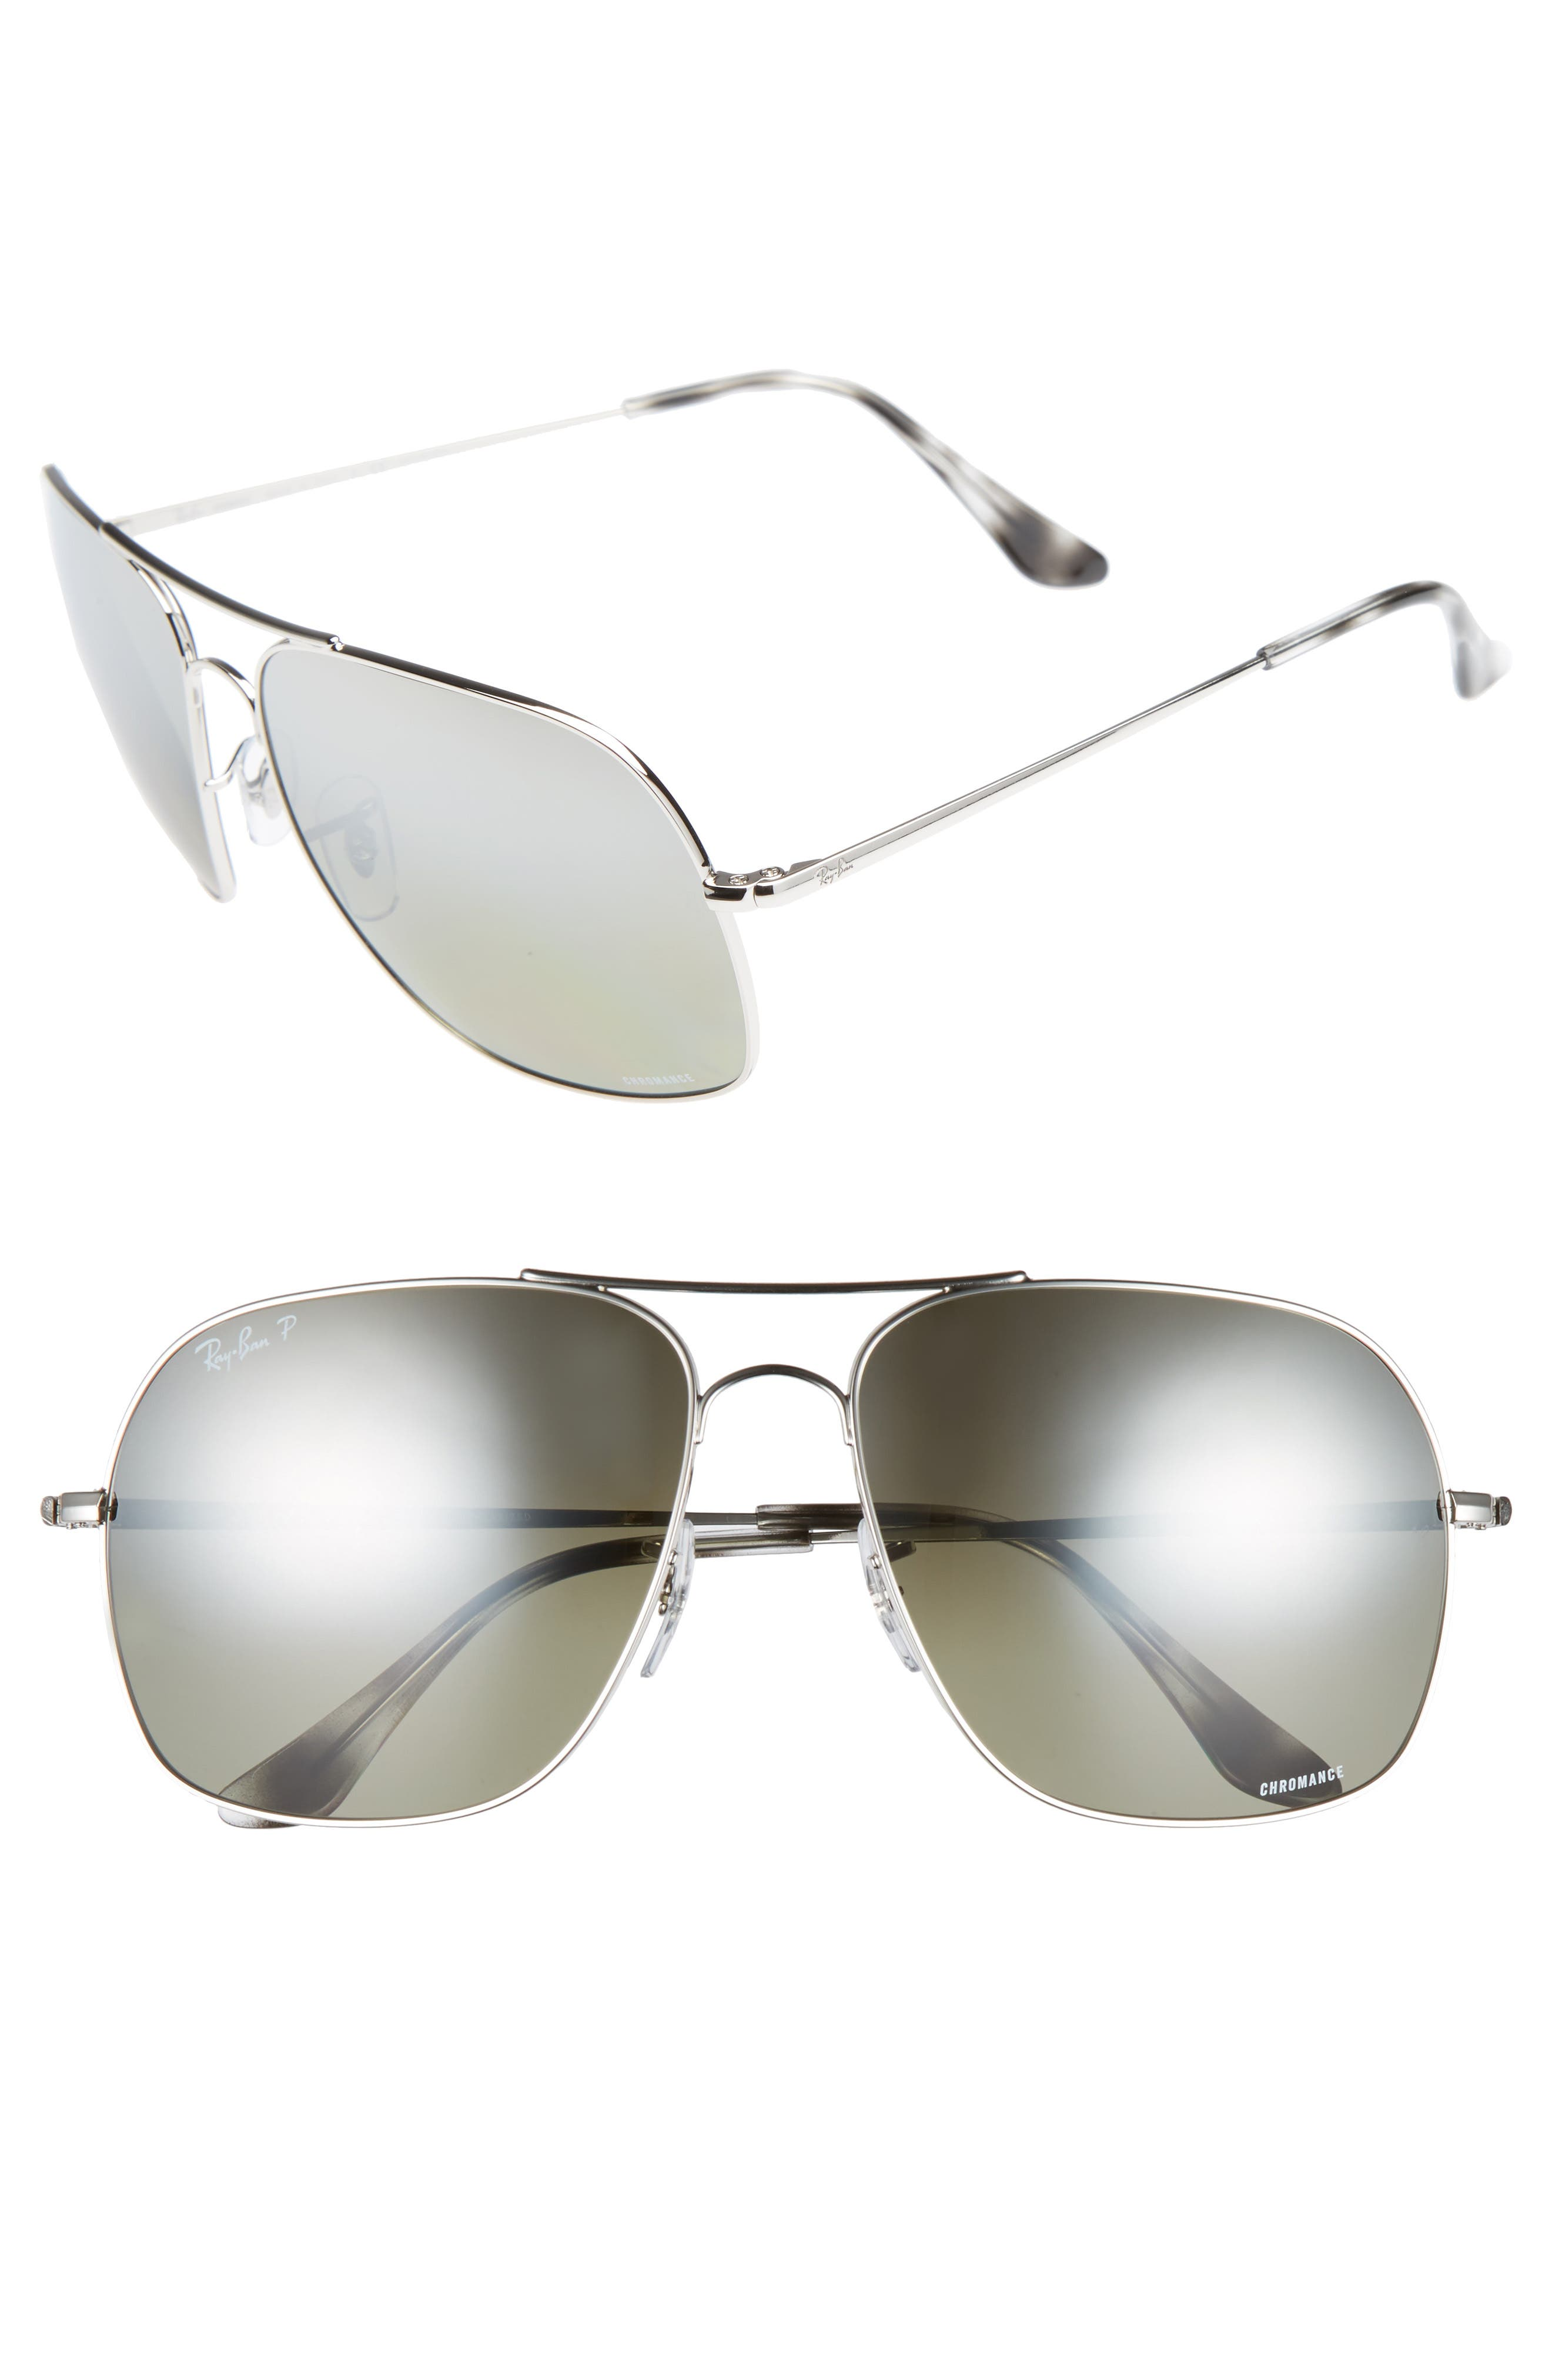 61mm Mirrored Lens Polarized Aviator Sunglasses,                         Main,                         color, Silver